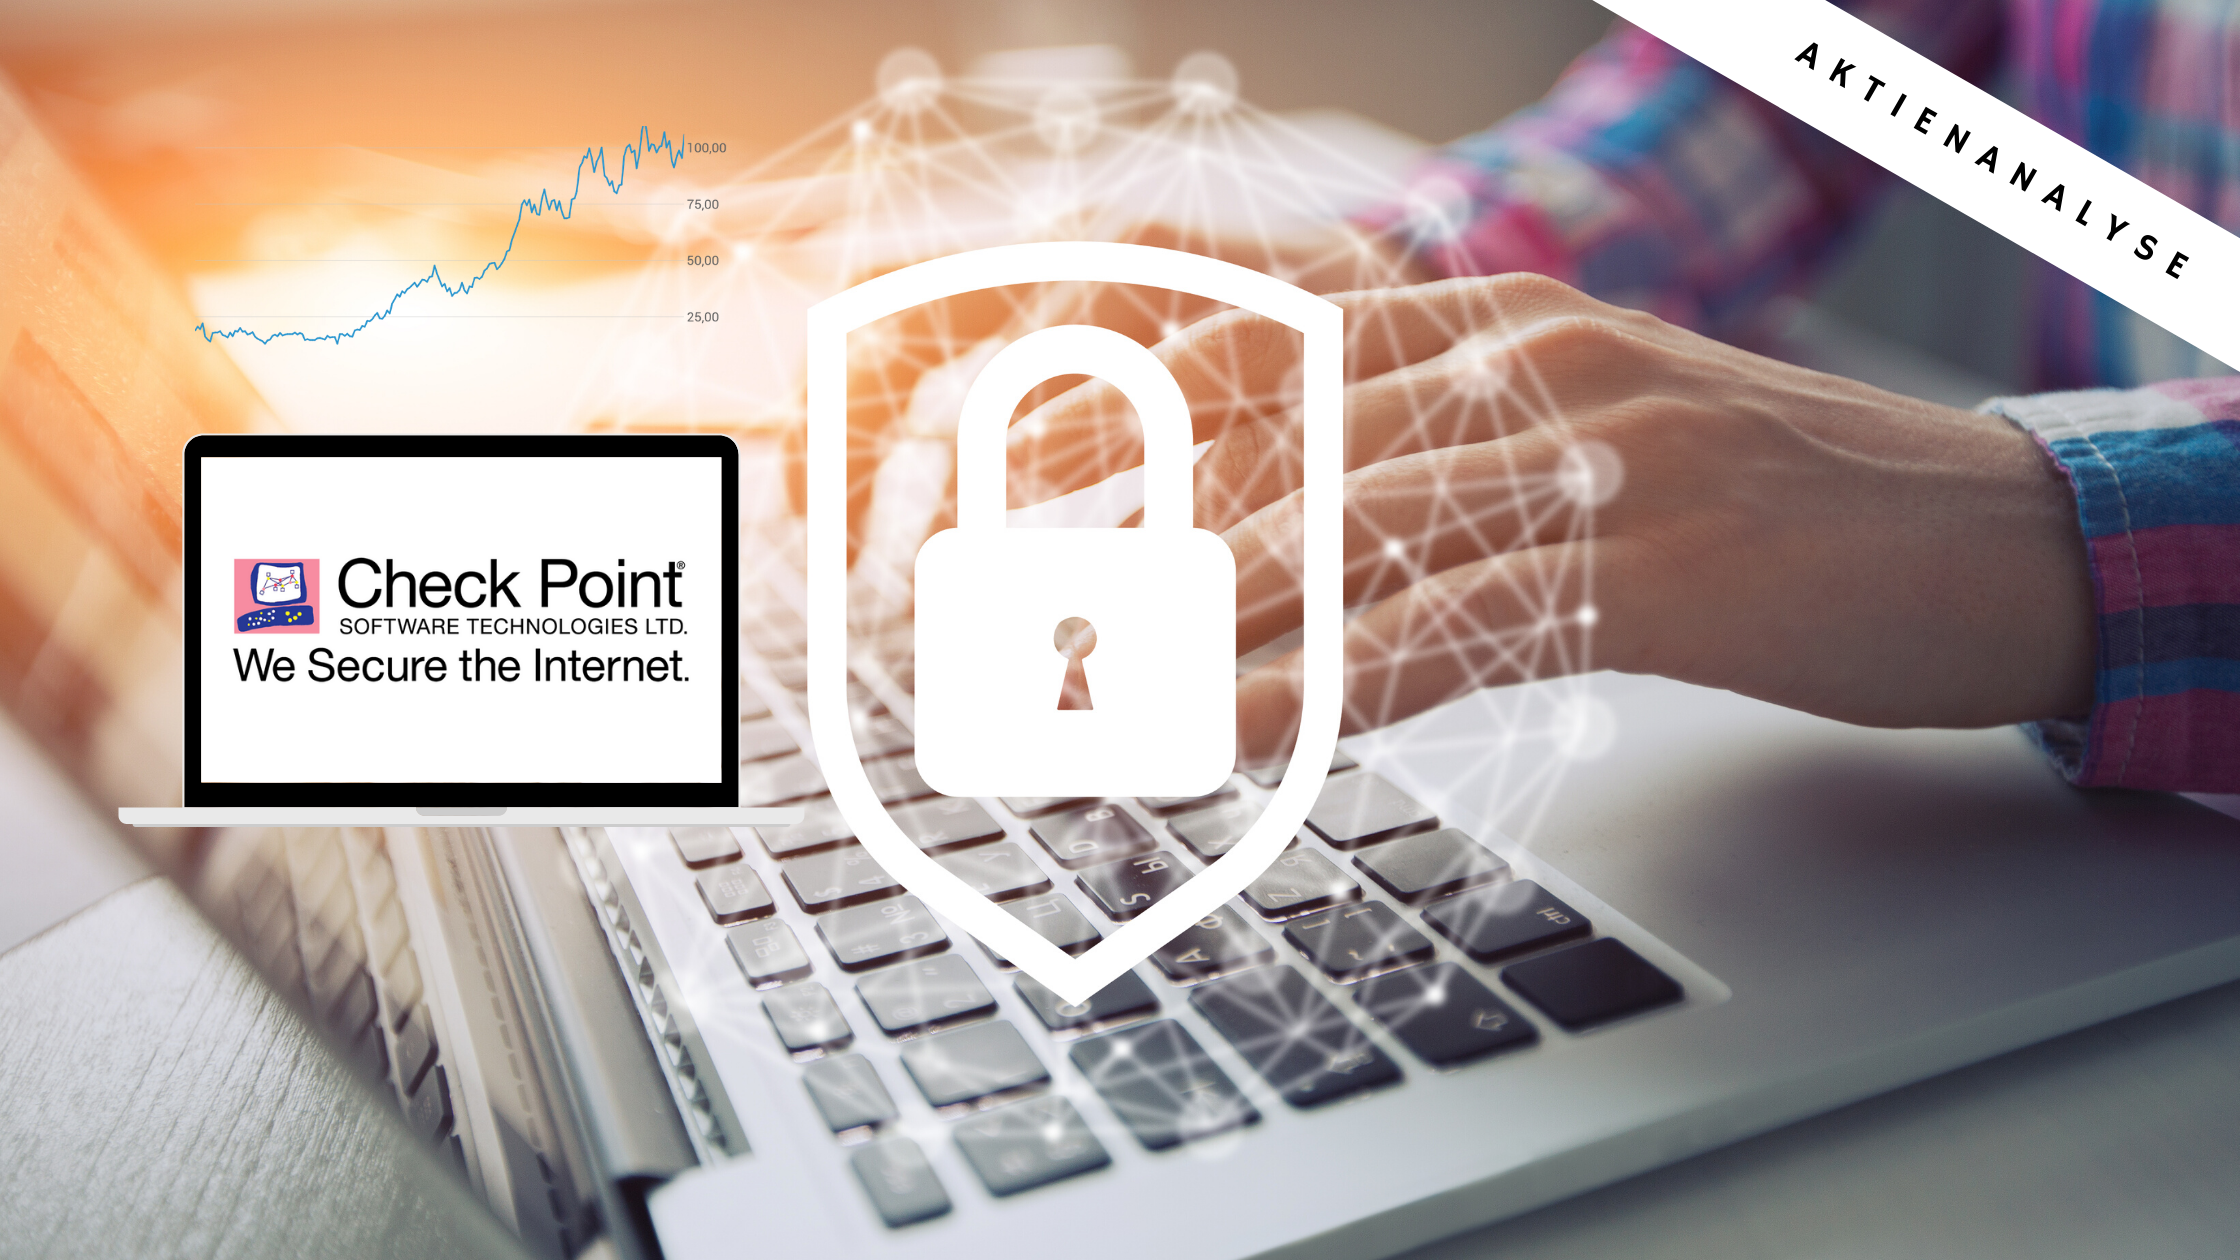 Check Point Software Tech.: Der Großvater der IT-Security